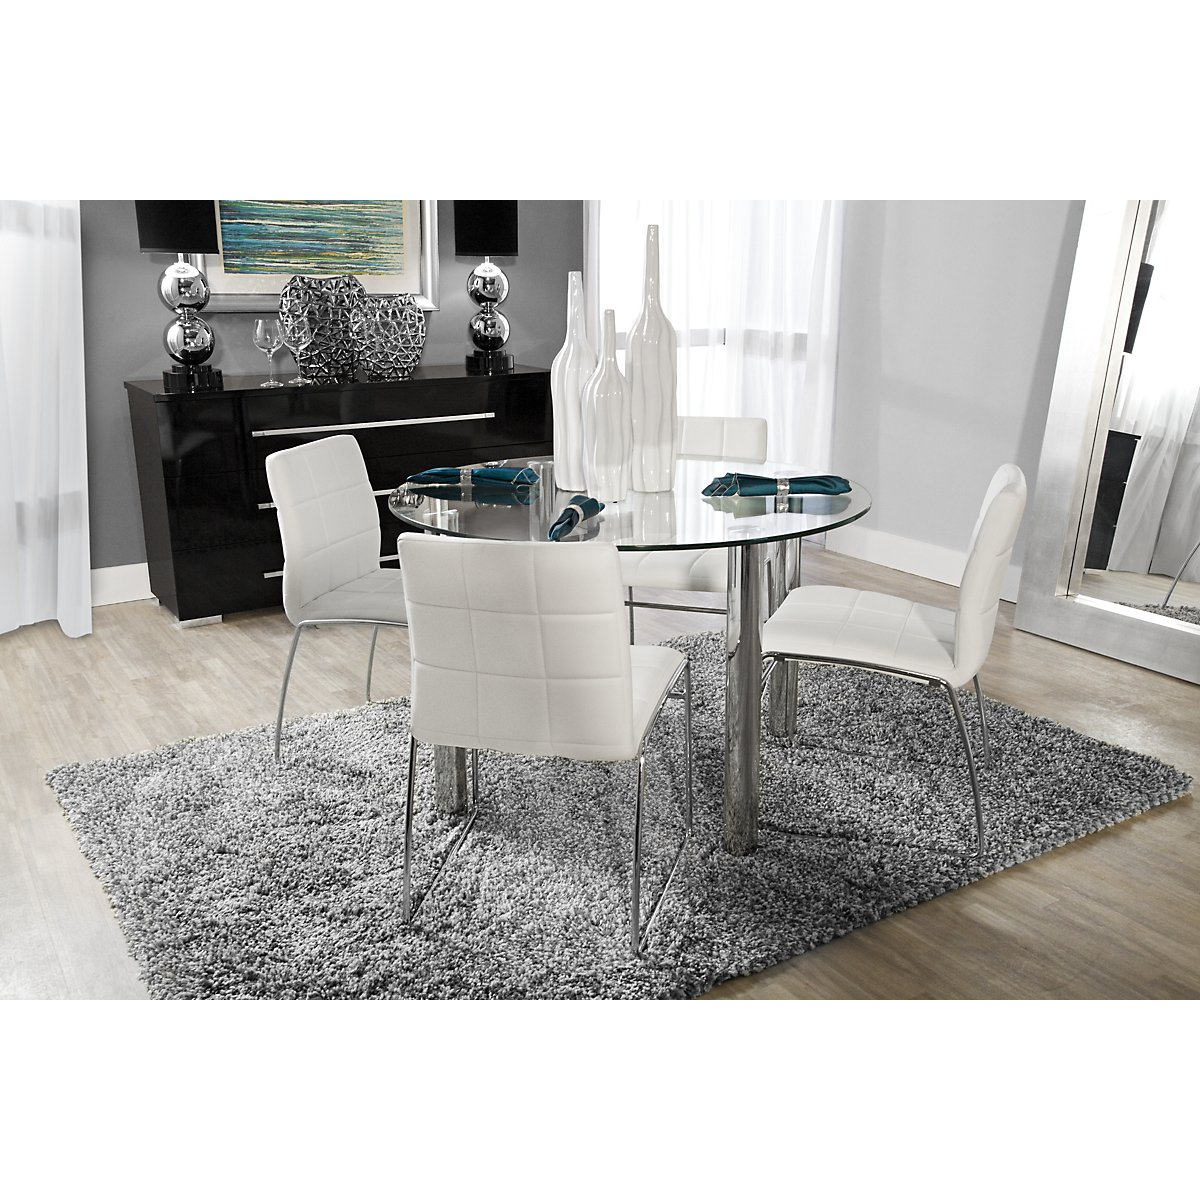 White Circle TableModern Black Round Dining Table For